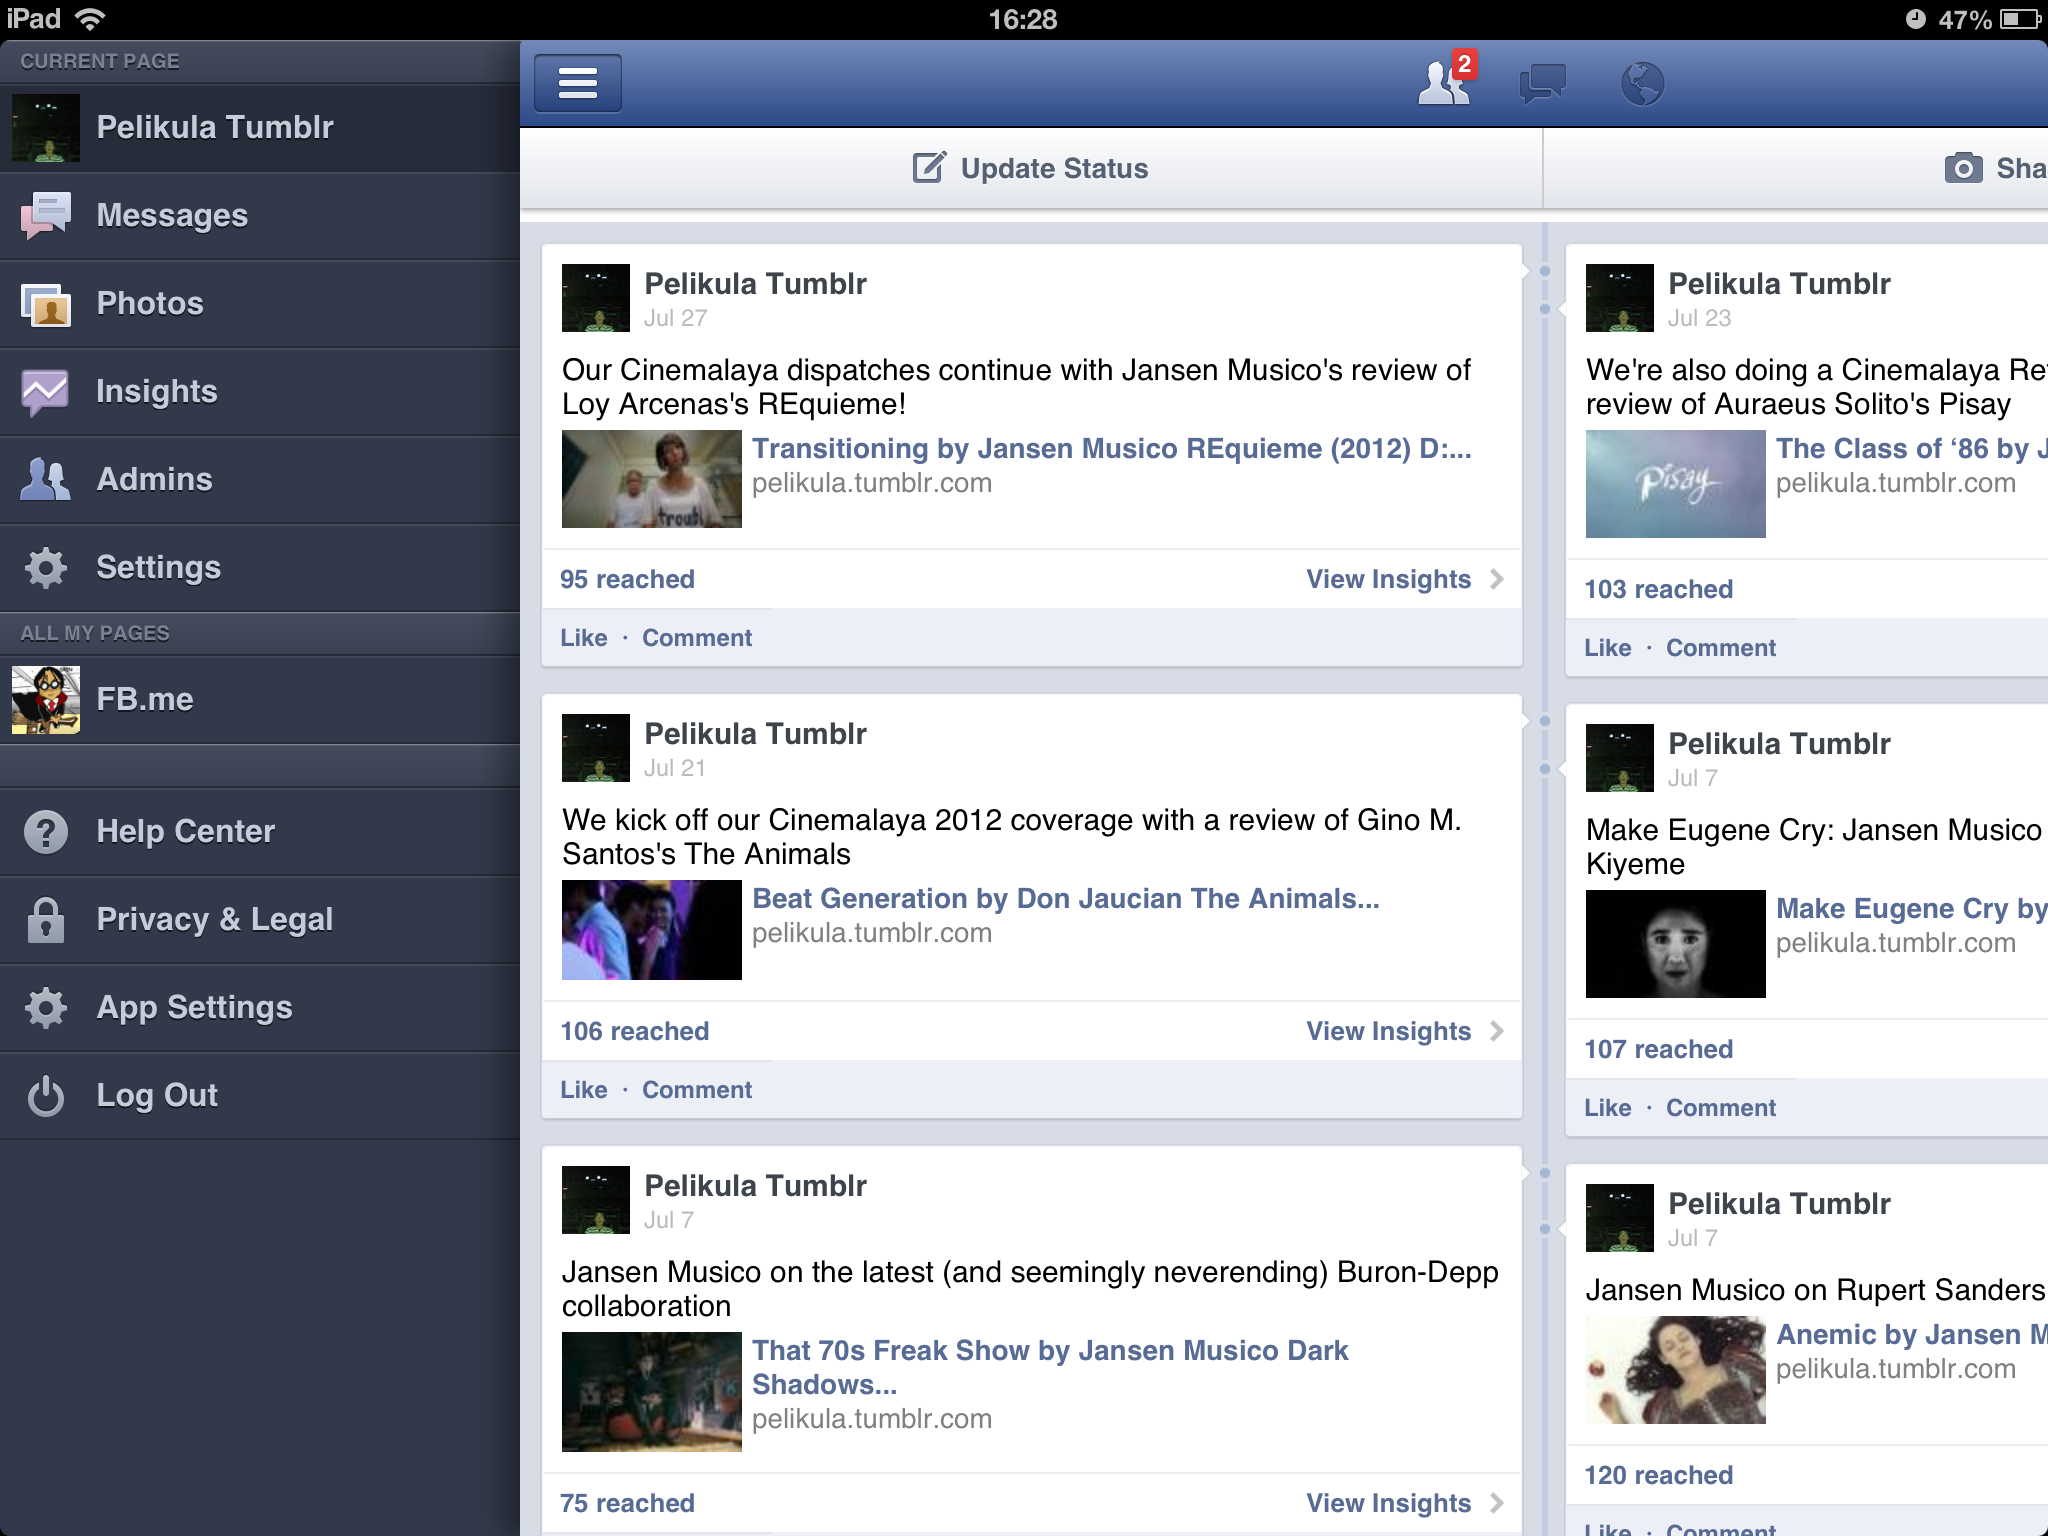 Facebook Pages Manager Gains iPad Landscape Support